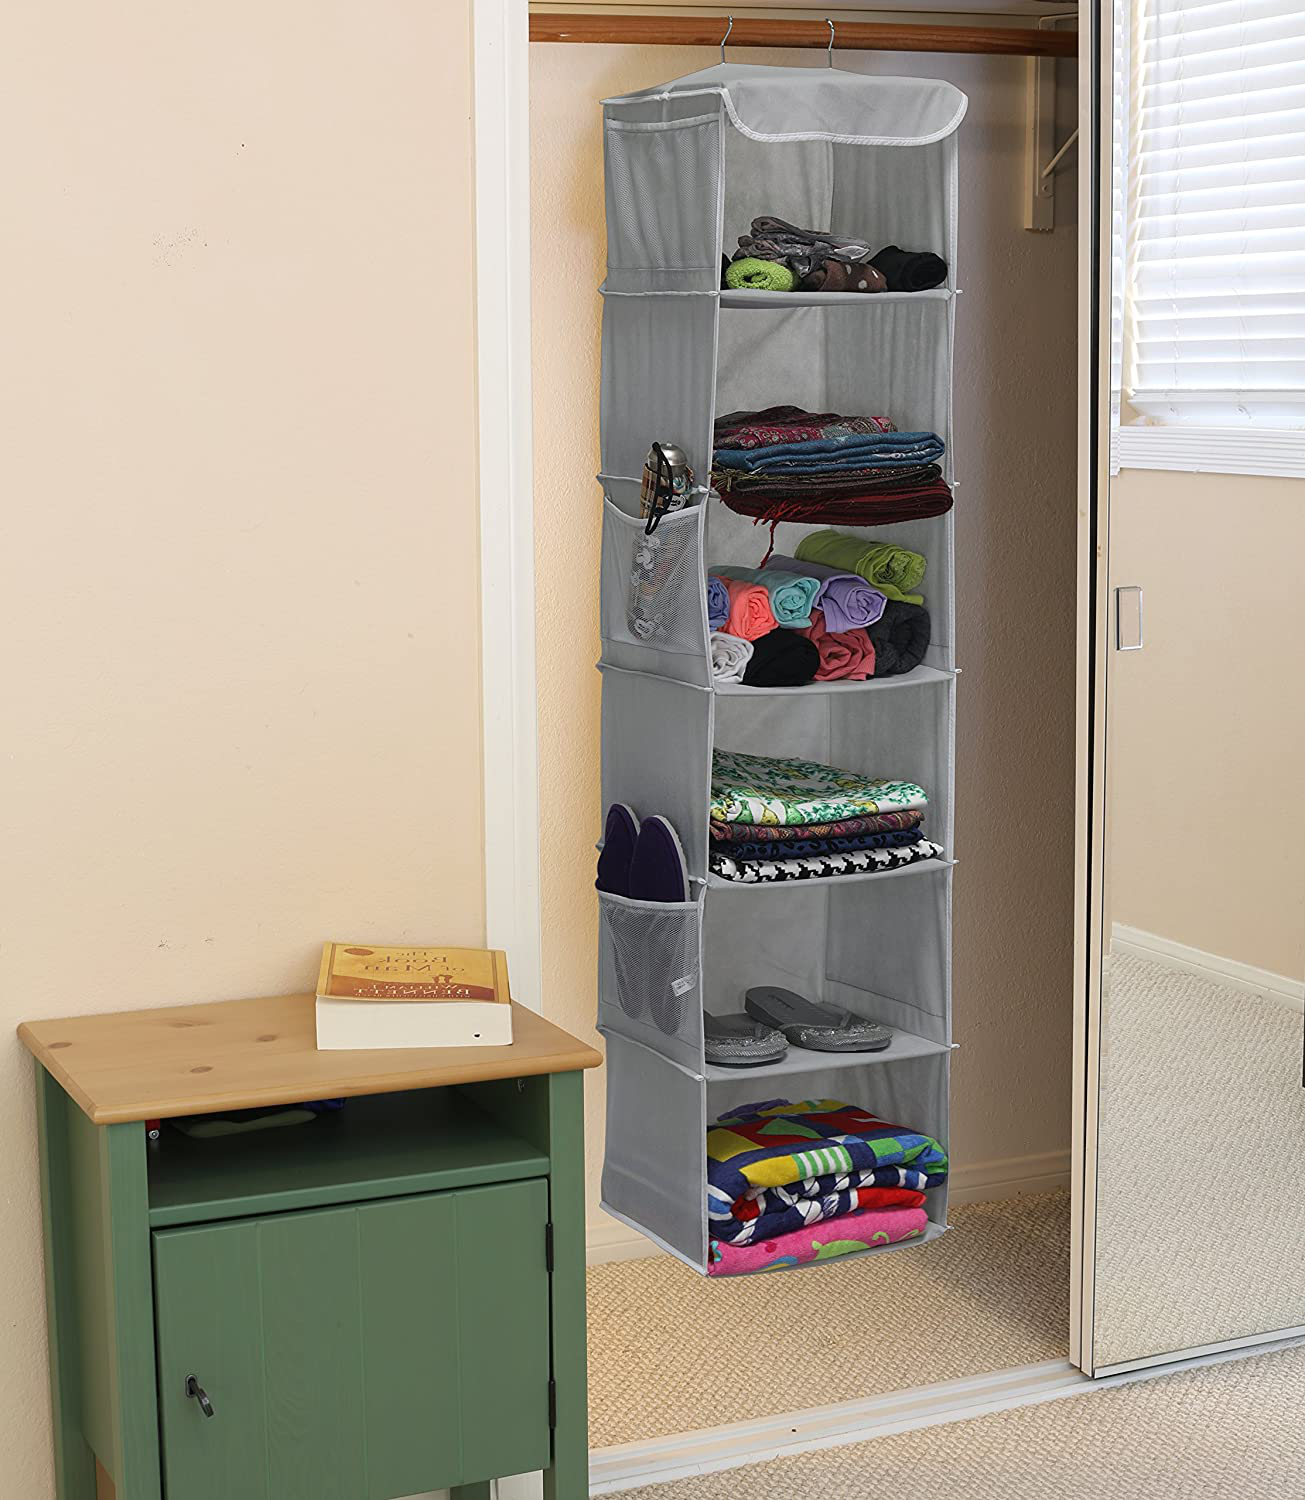 Simple Houseware 6 Shelves Hanging Closet Organizer, Gray